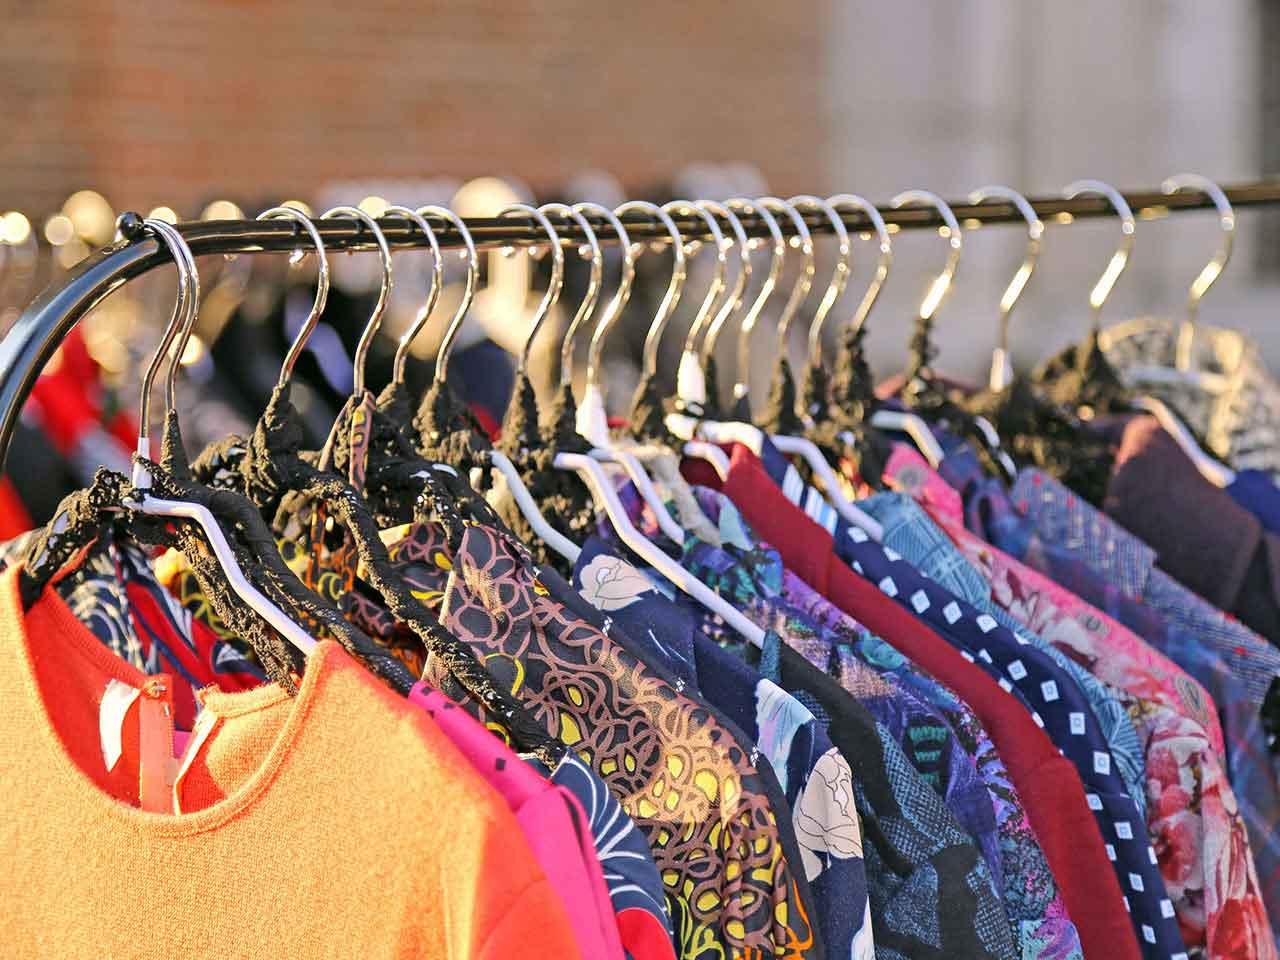 Rack of vintage clothes